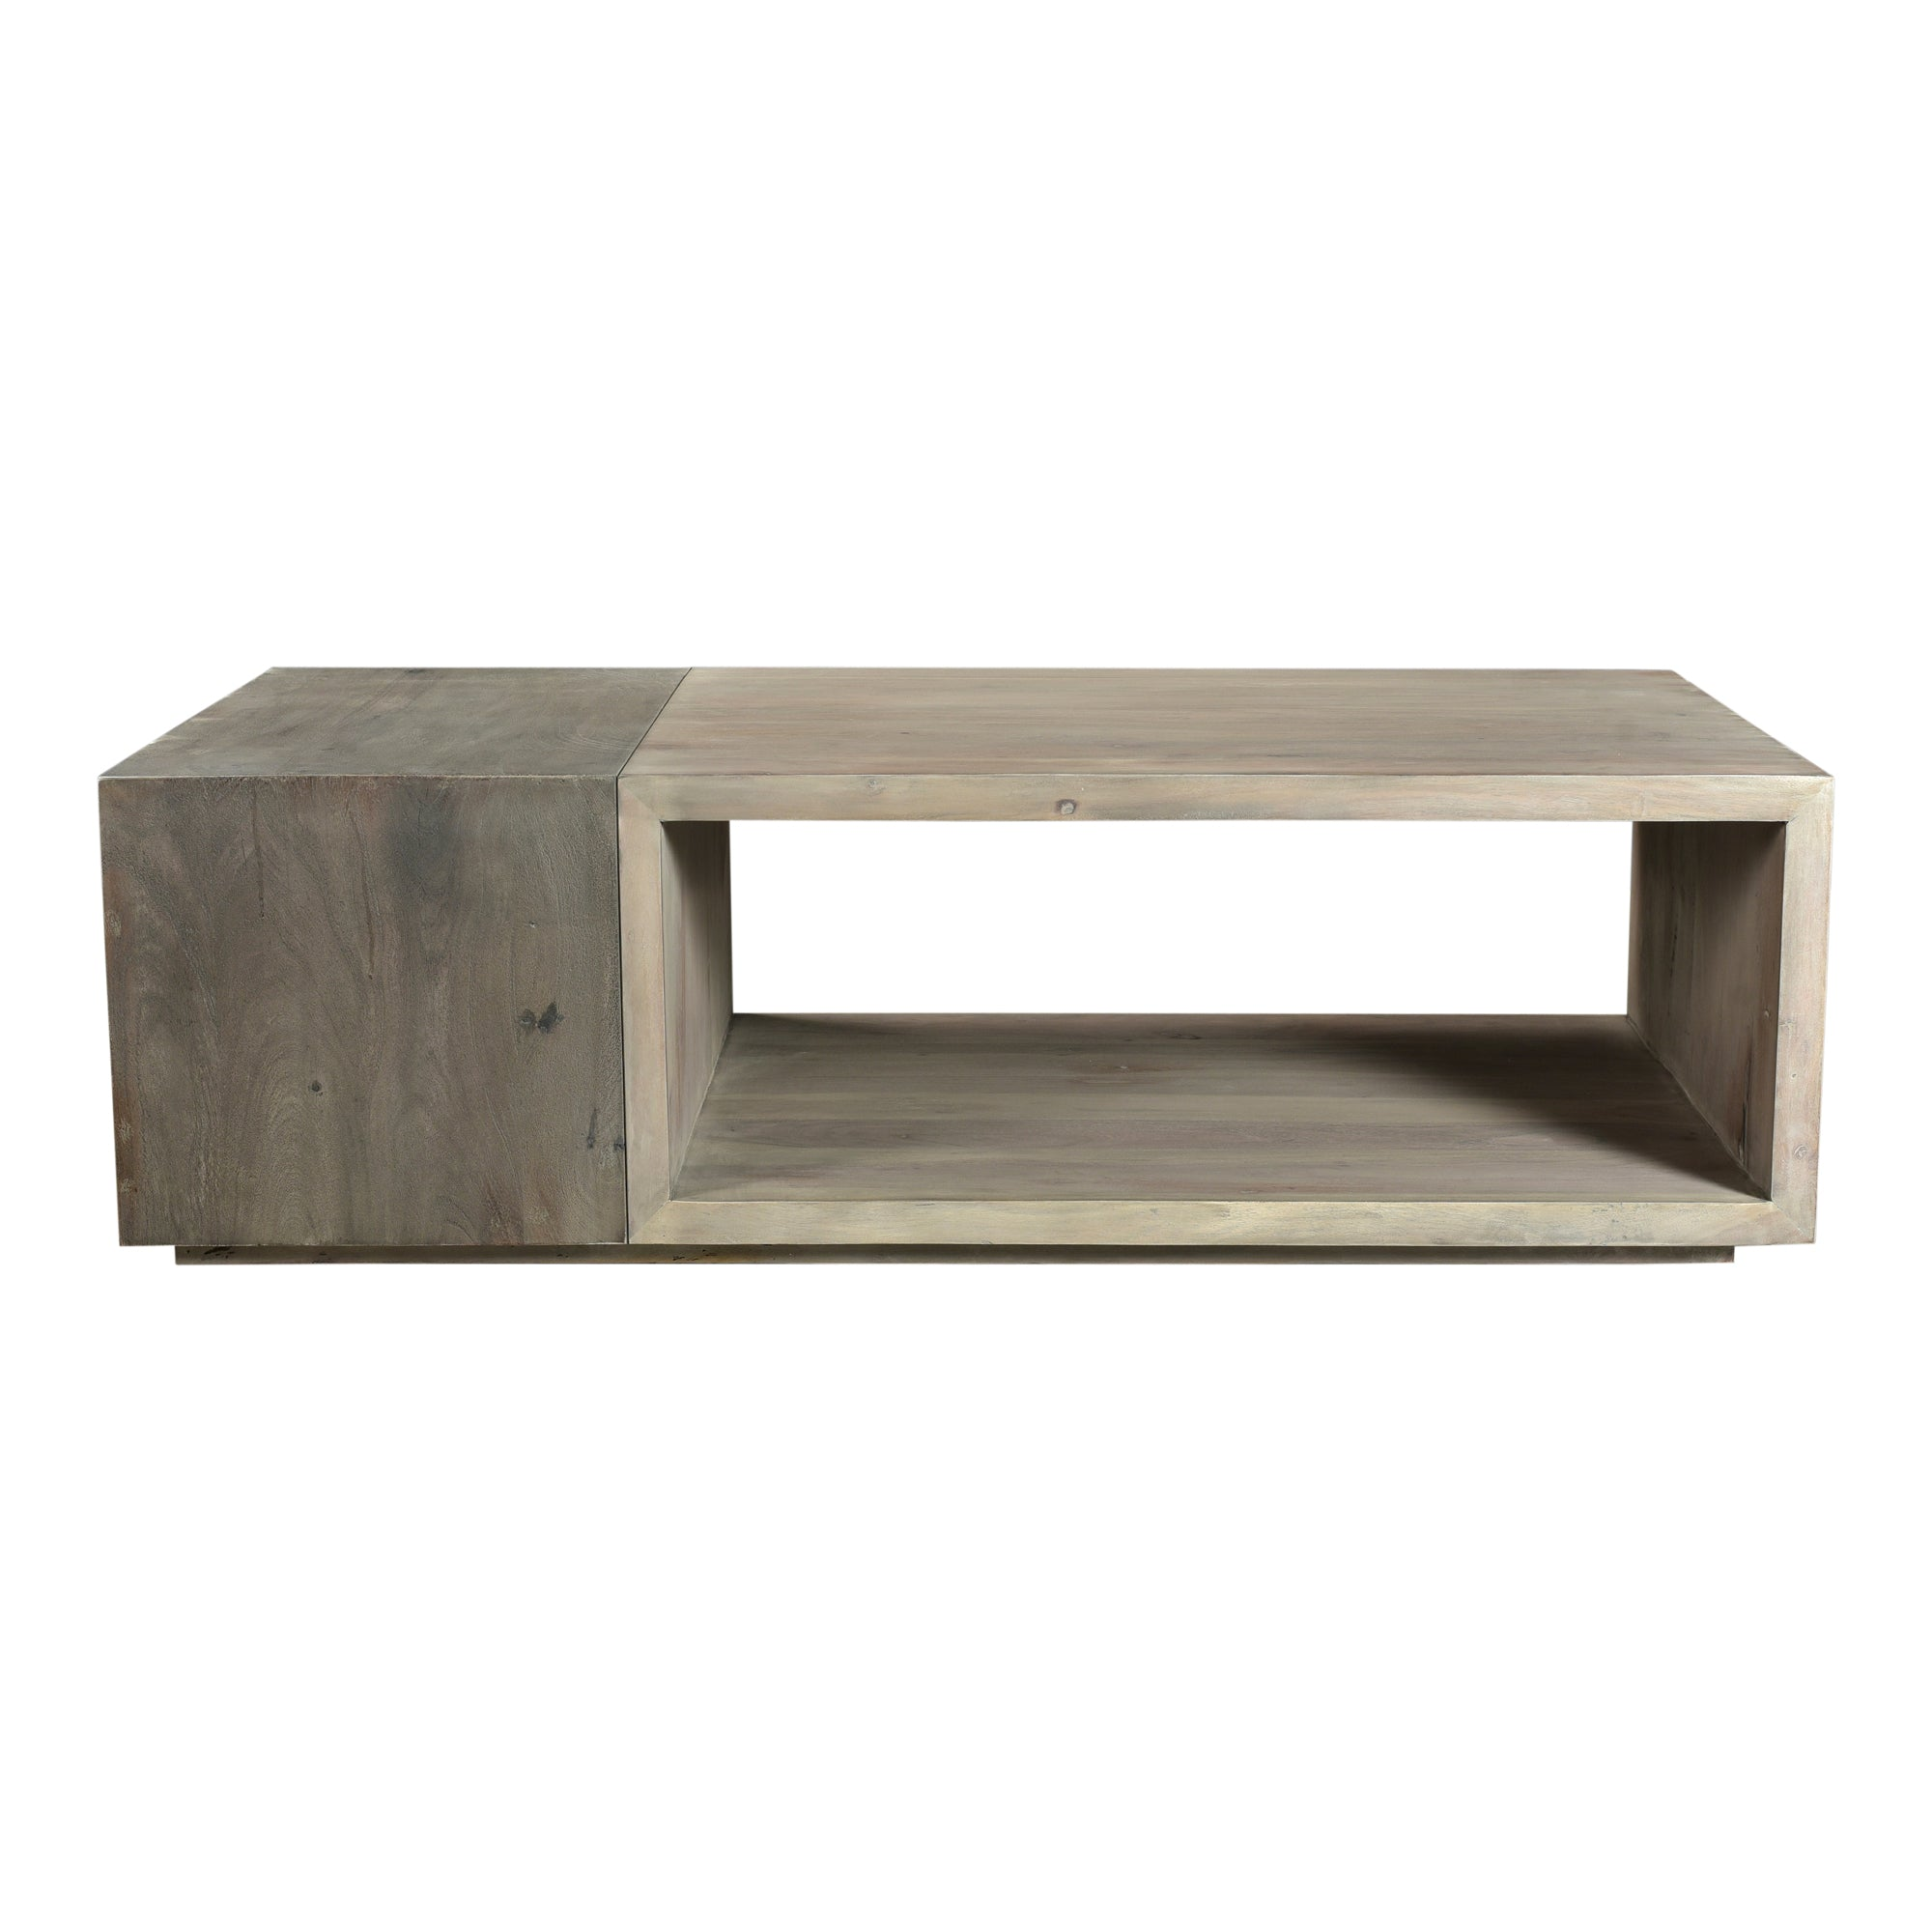 TIMTAM COFFEE TABLE, Grey - Tops-Dress